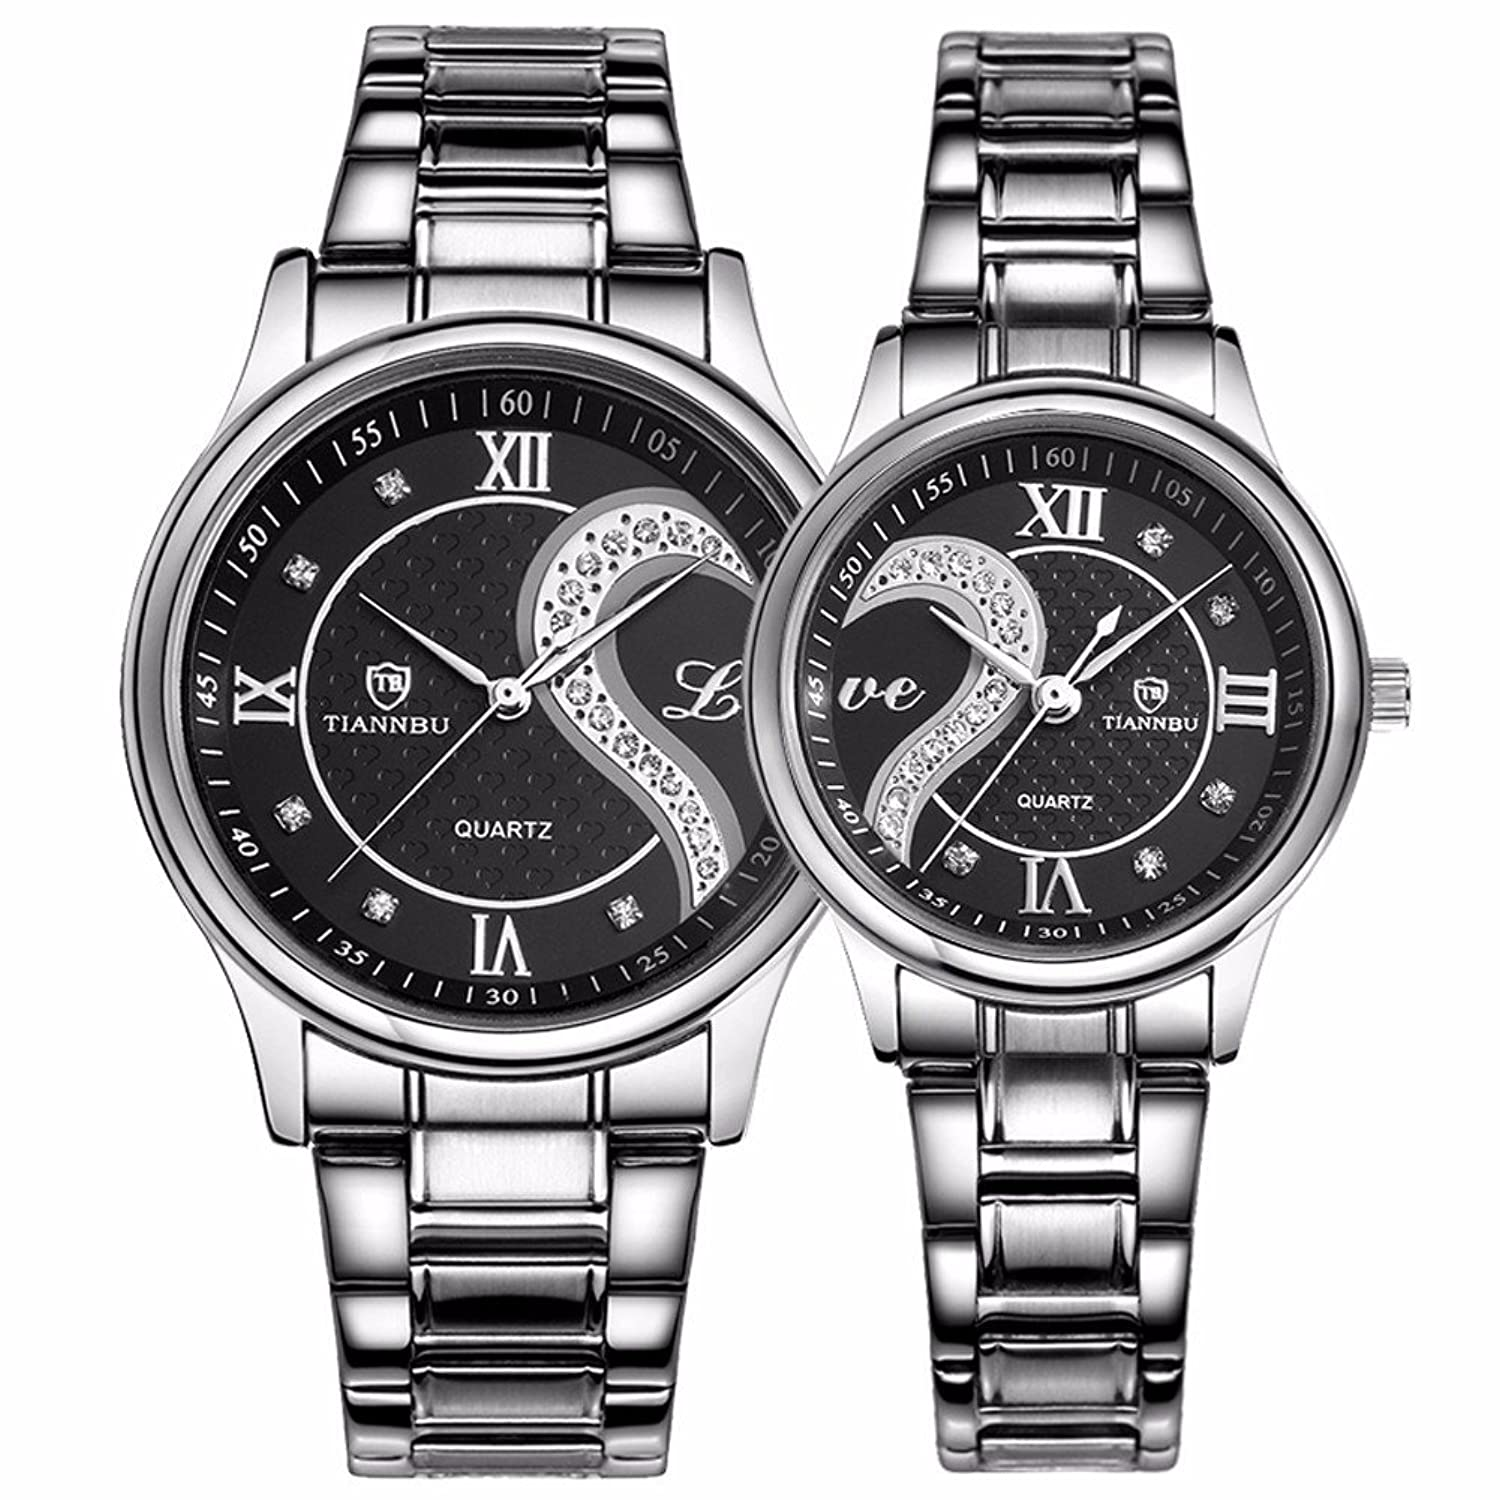 Amazon.com: Fq-102 Stainless Steel Romantic Pair His and Hers ...